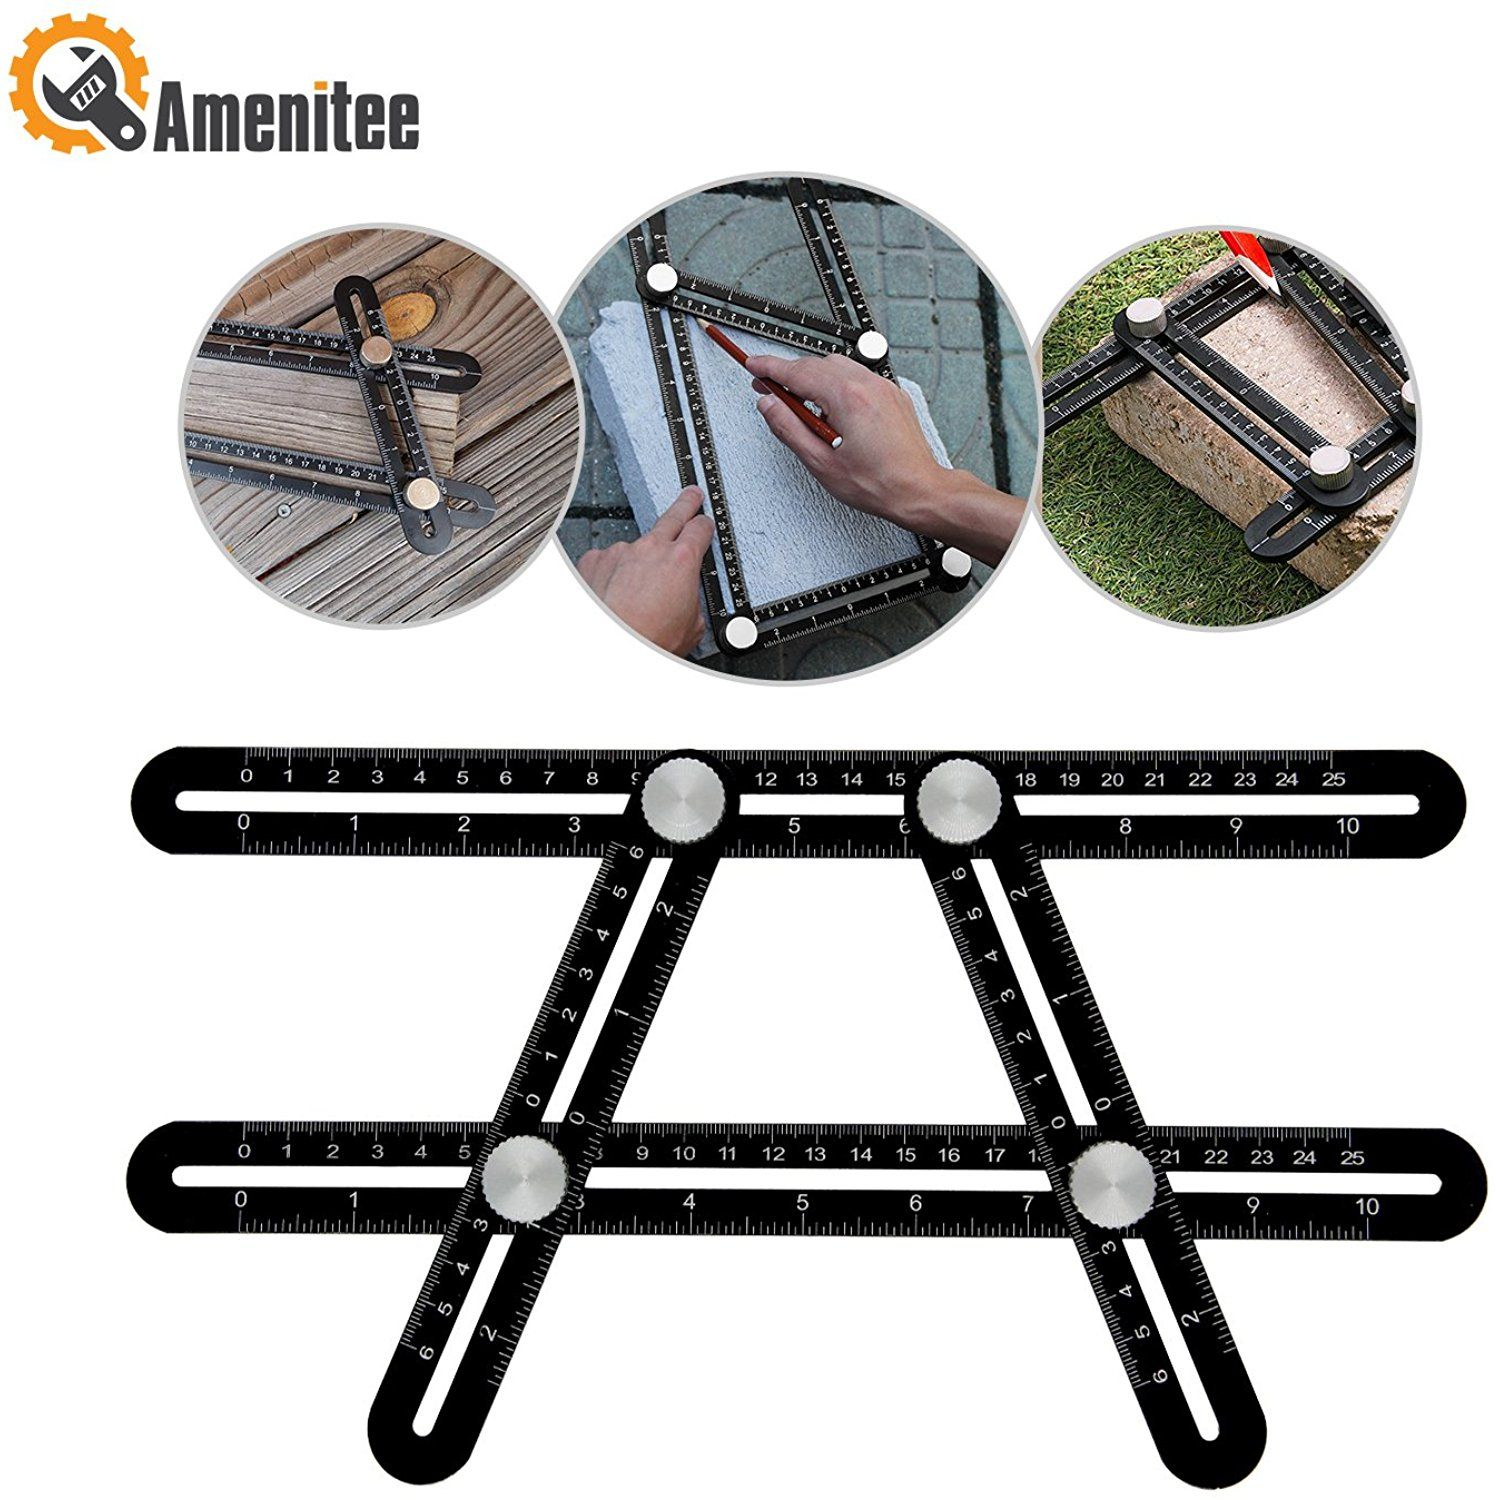 6 Sides Universal Aluminum Alloy Angleizer Template Tool Angle Measuring Ruler